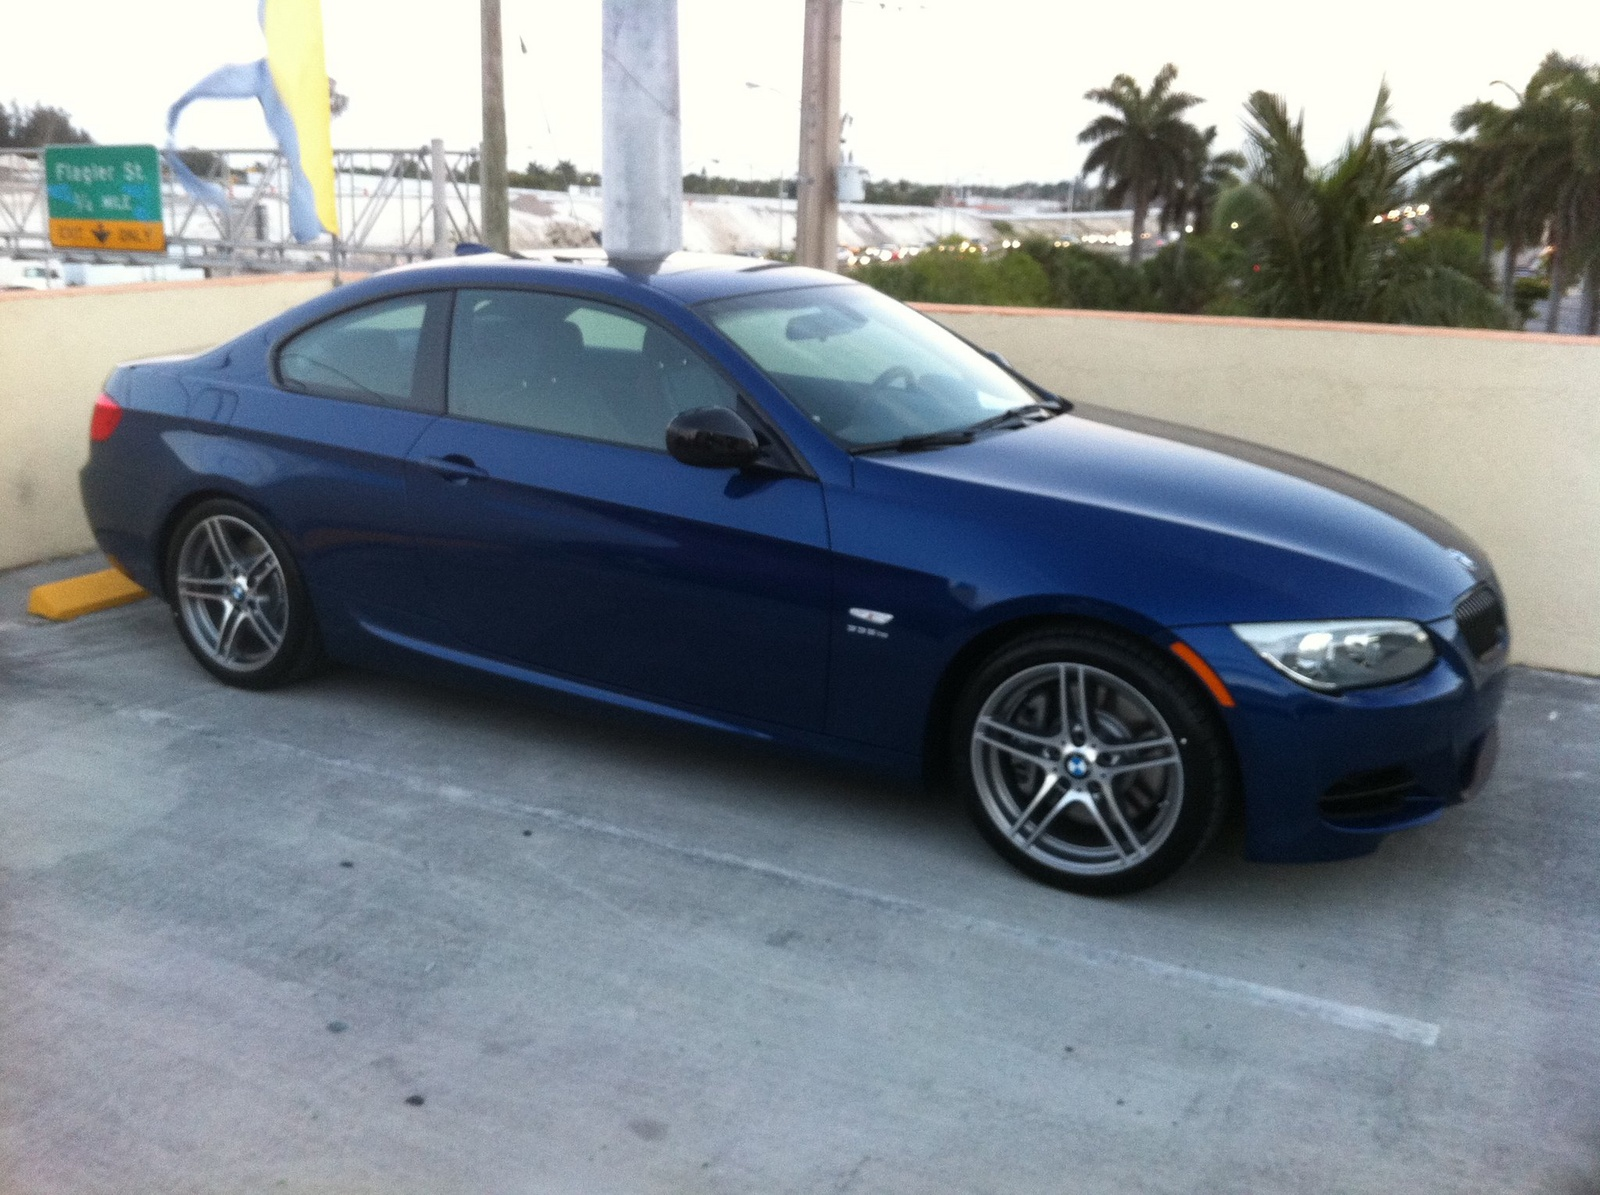 BMW 3 series 335is 2011 photo - 4